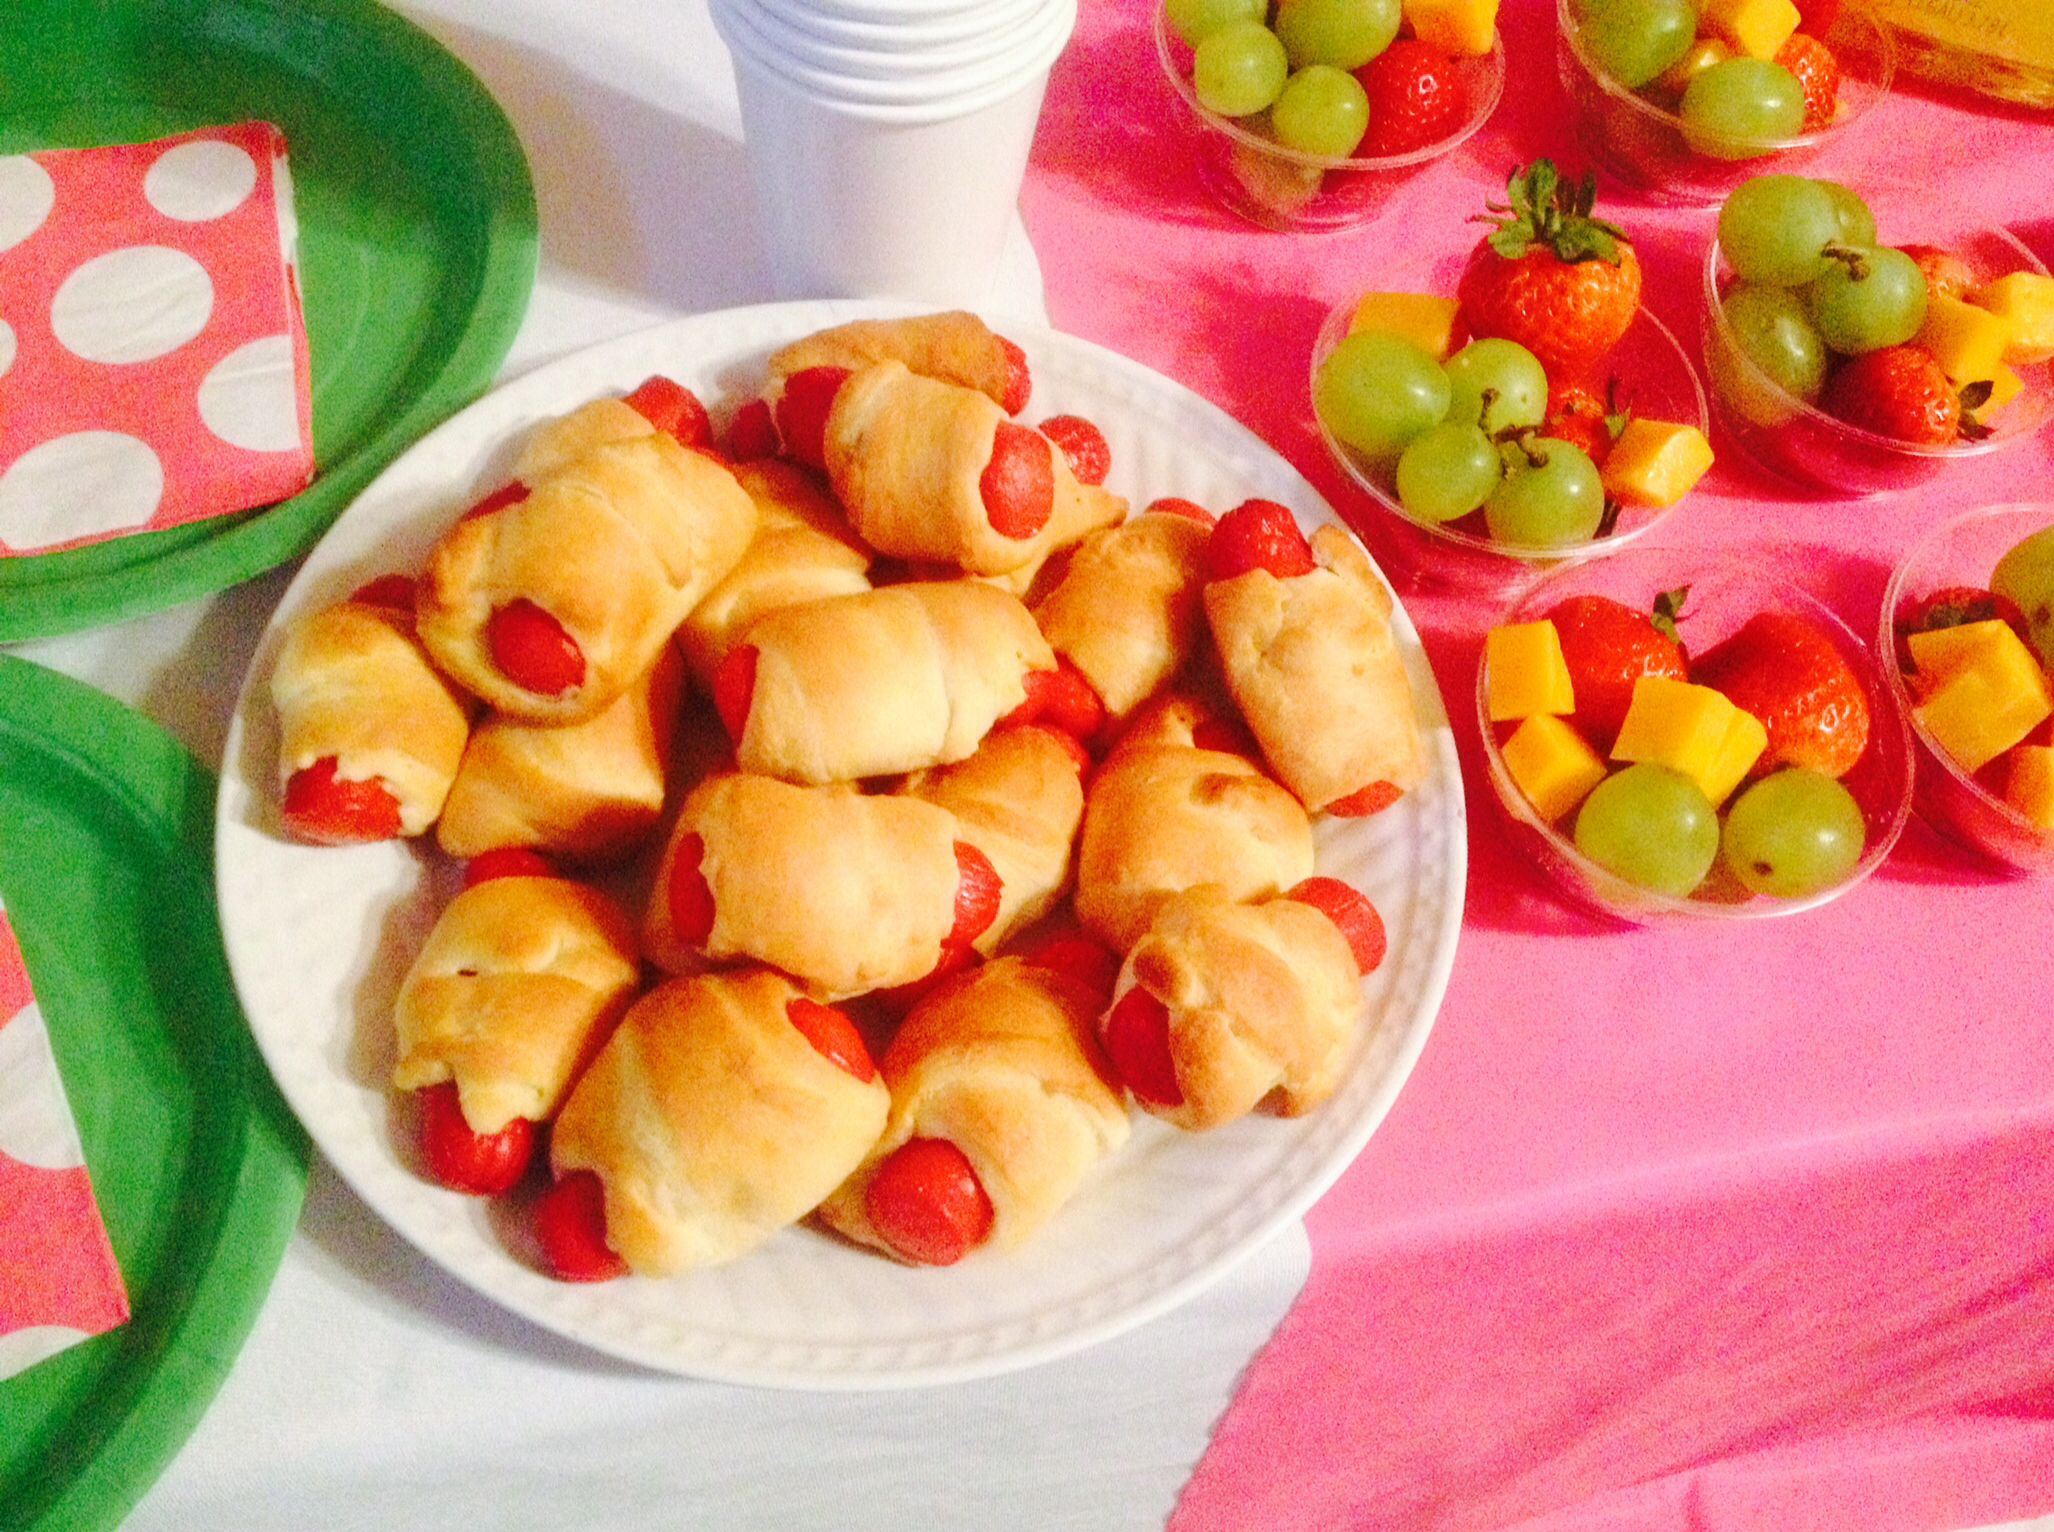 finger food ideas for bridal shower%0A Girls tea party food ideas